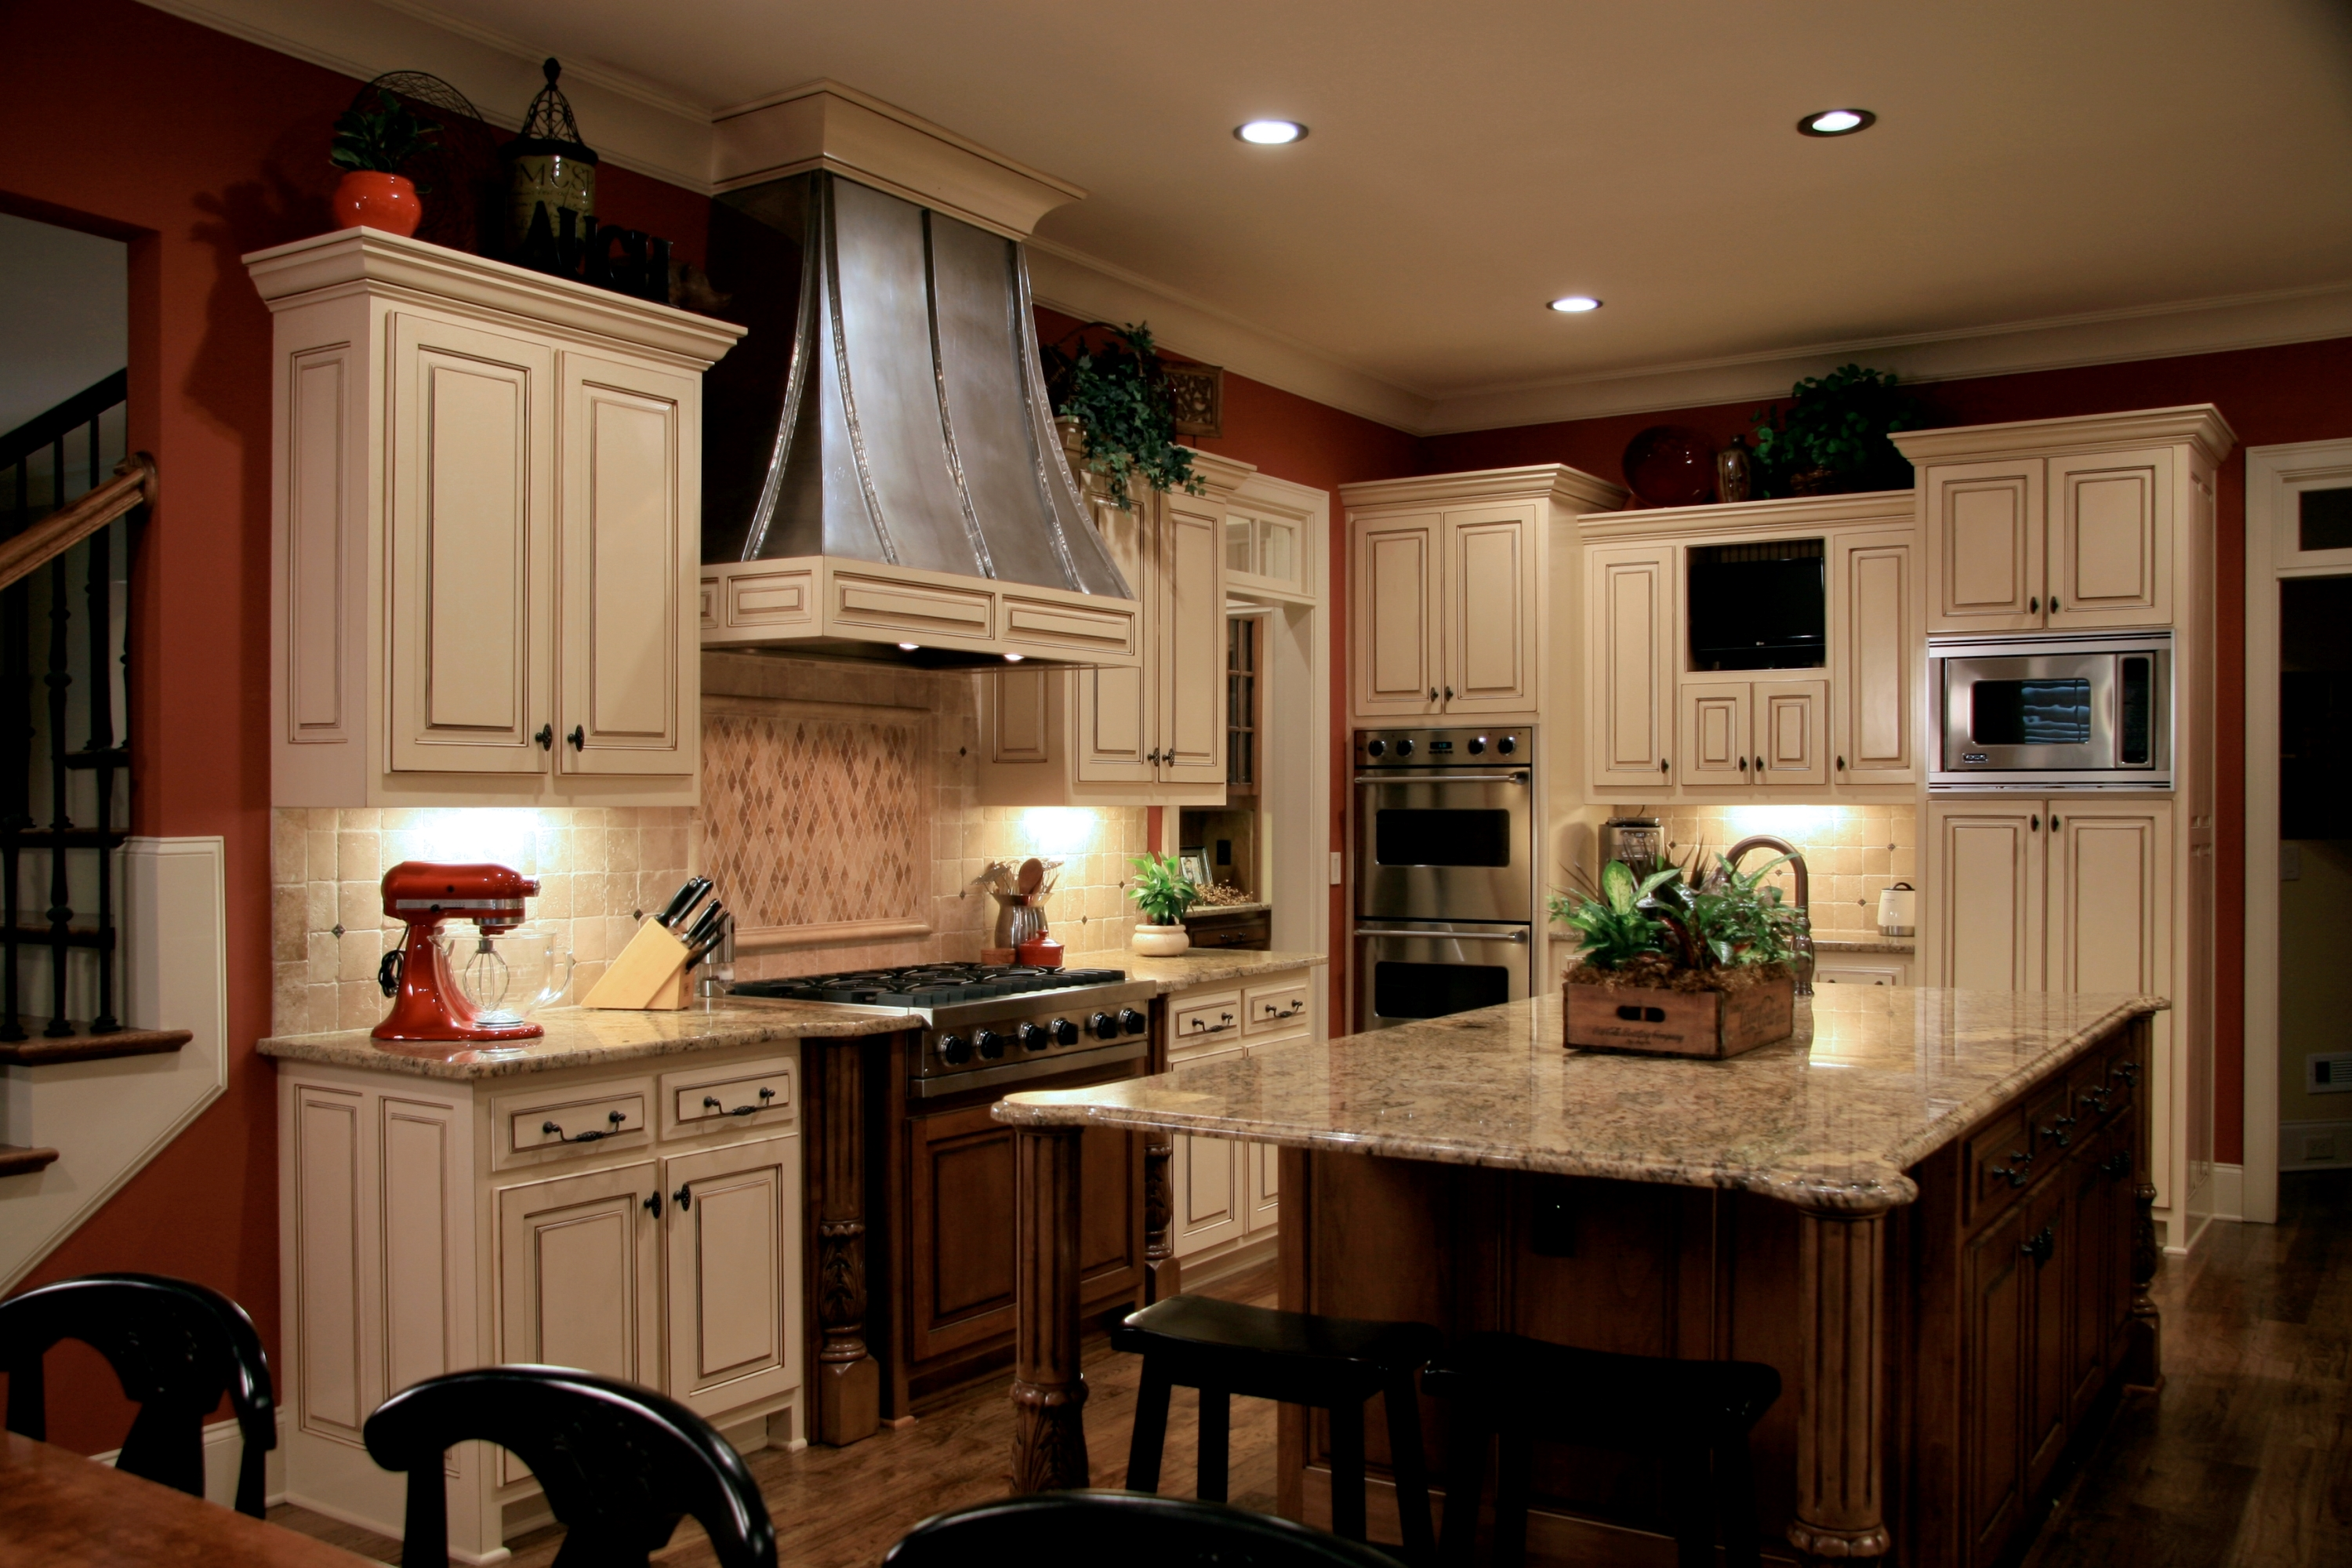 how to install recessed lighting in a kitchen recessed lighting kitchen Recessed lighting in a kitchen